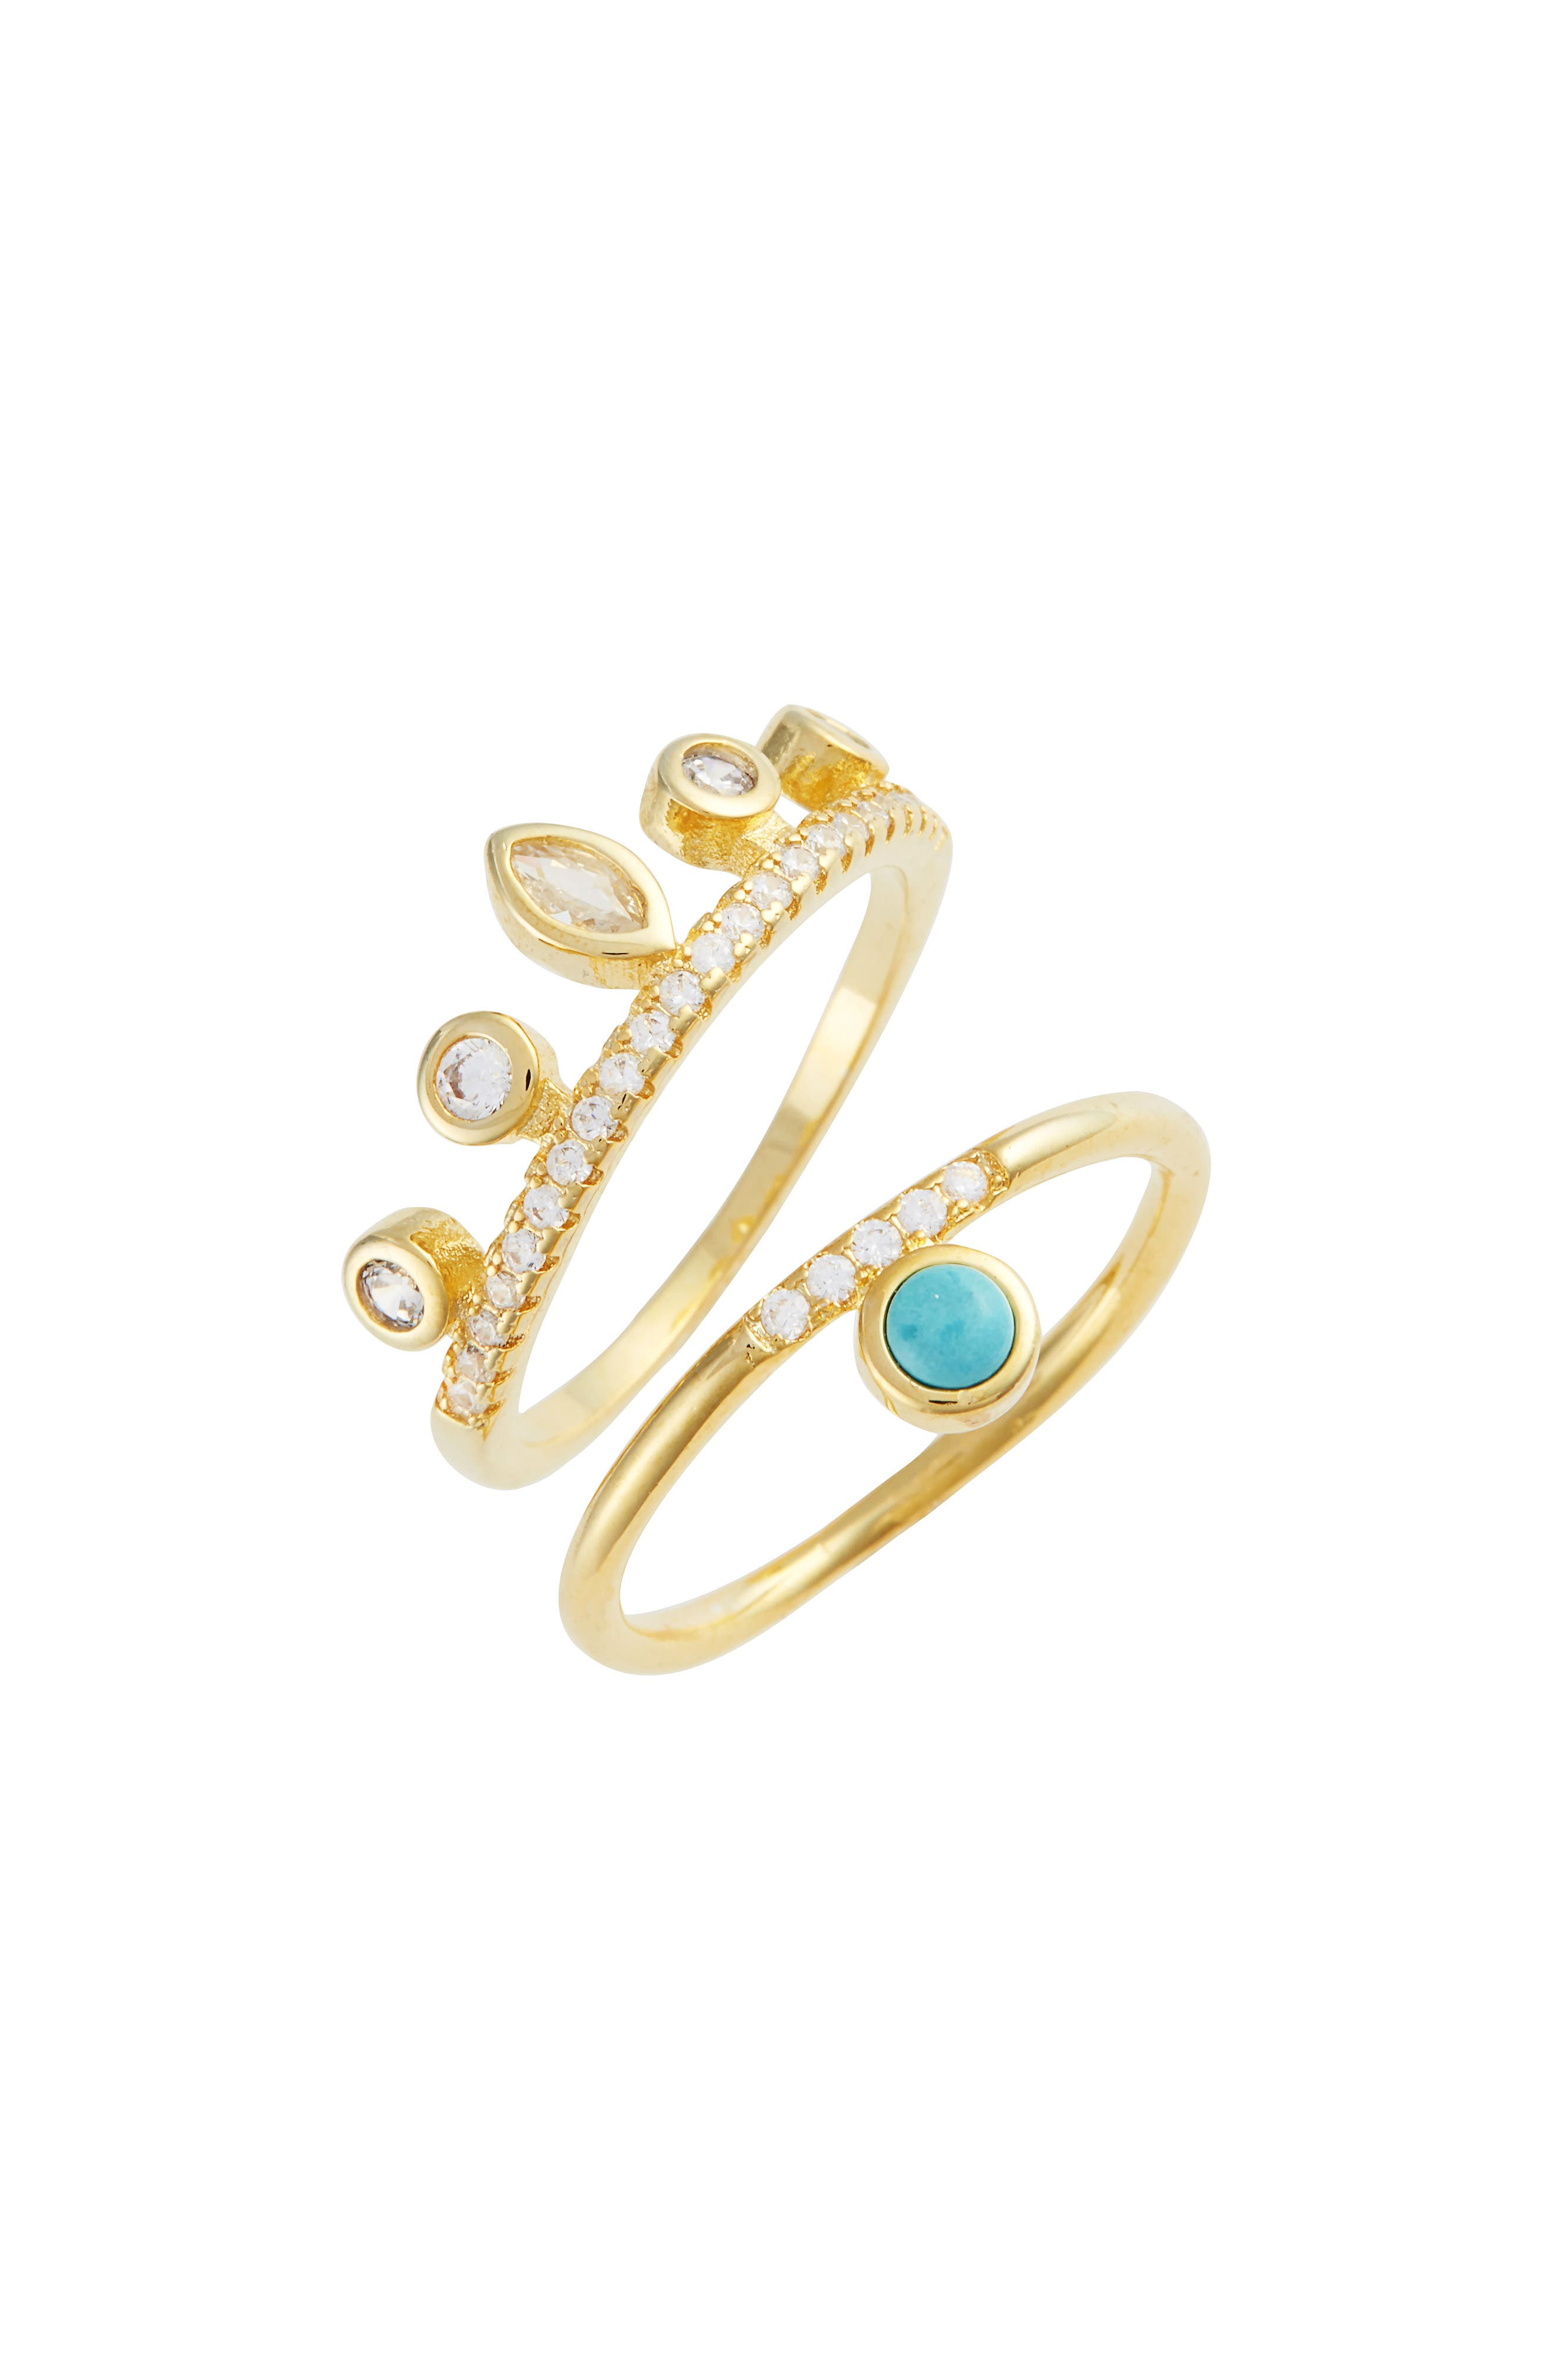 Jacinta Set of 2 Turquoise & Crystal Rings,                         Main,                         color, Gold